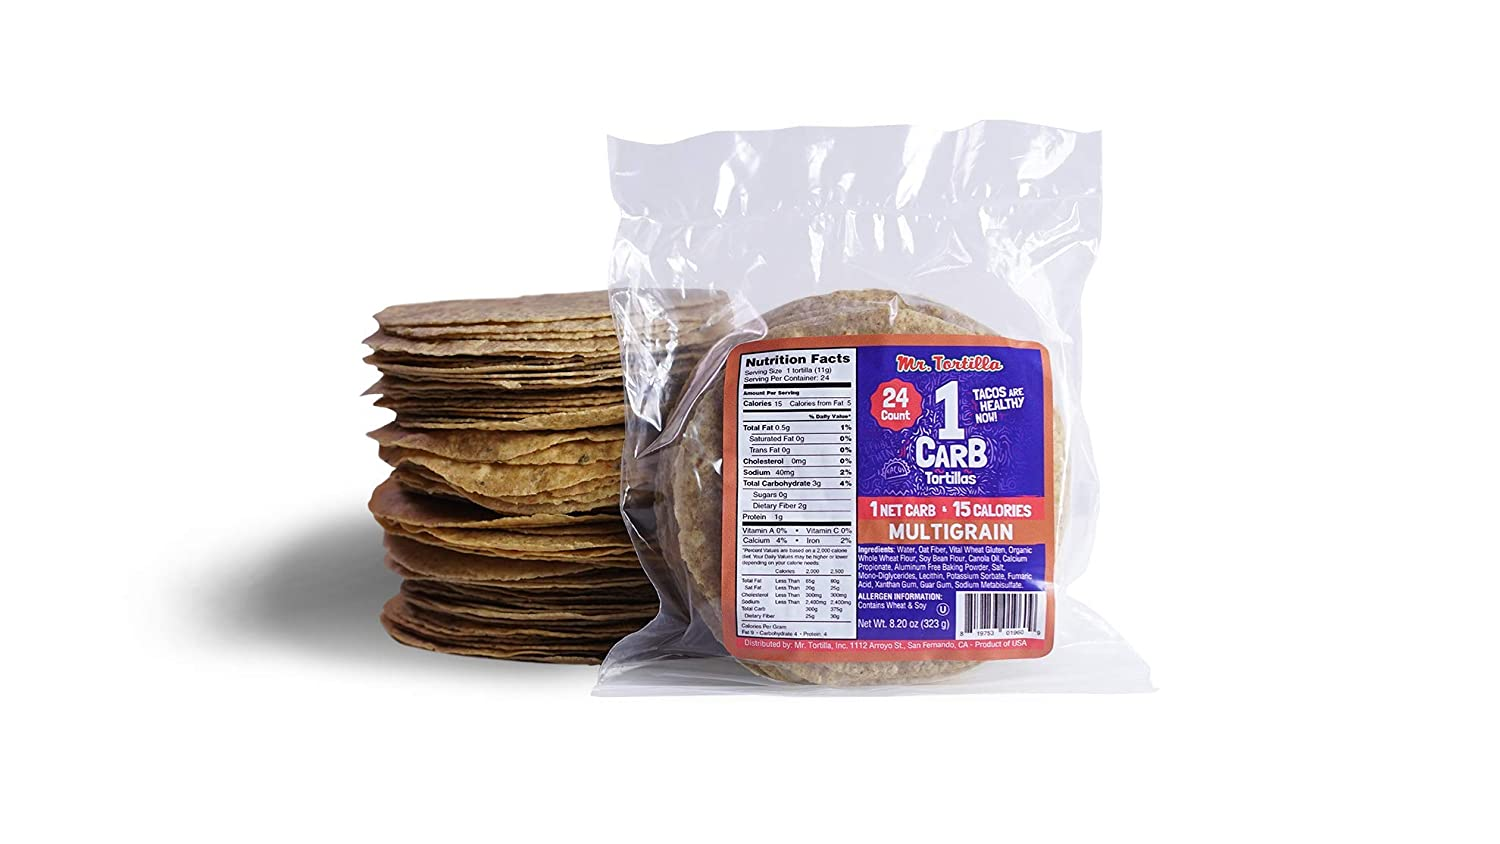 Mr. Tortilla 1 Net Carb Tortillas (96 Tortillas) | Keto, Vegan, Kosher | (Multigrain)